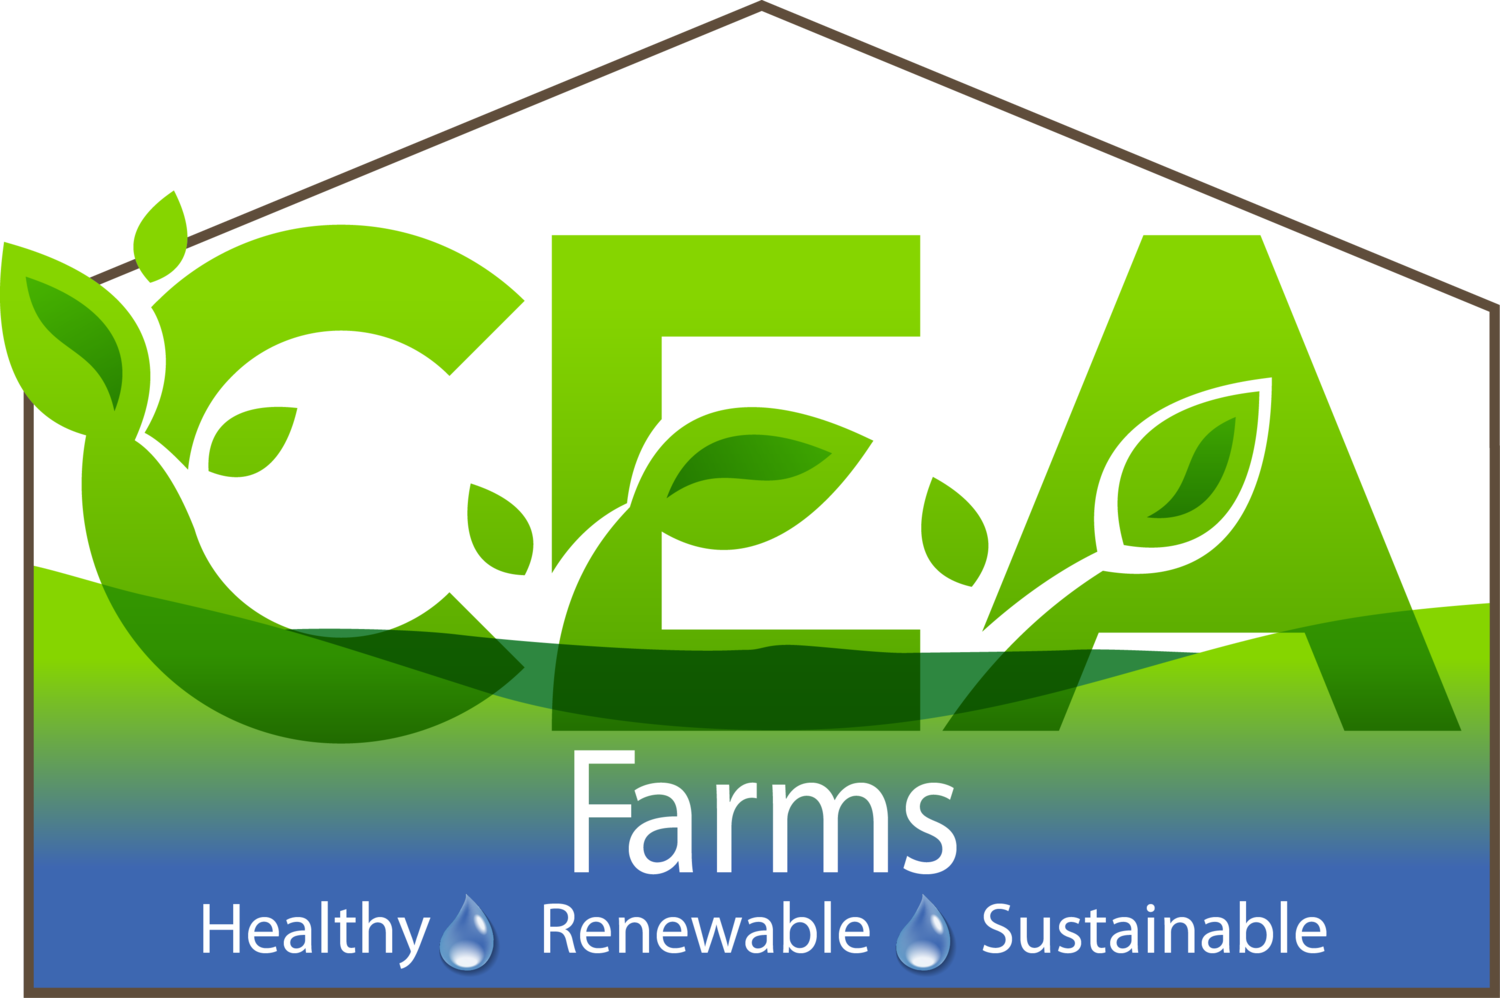 CEA Farms